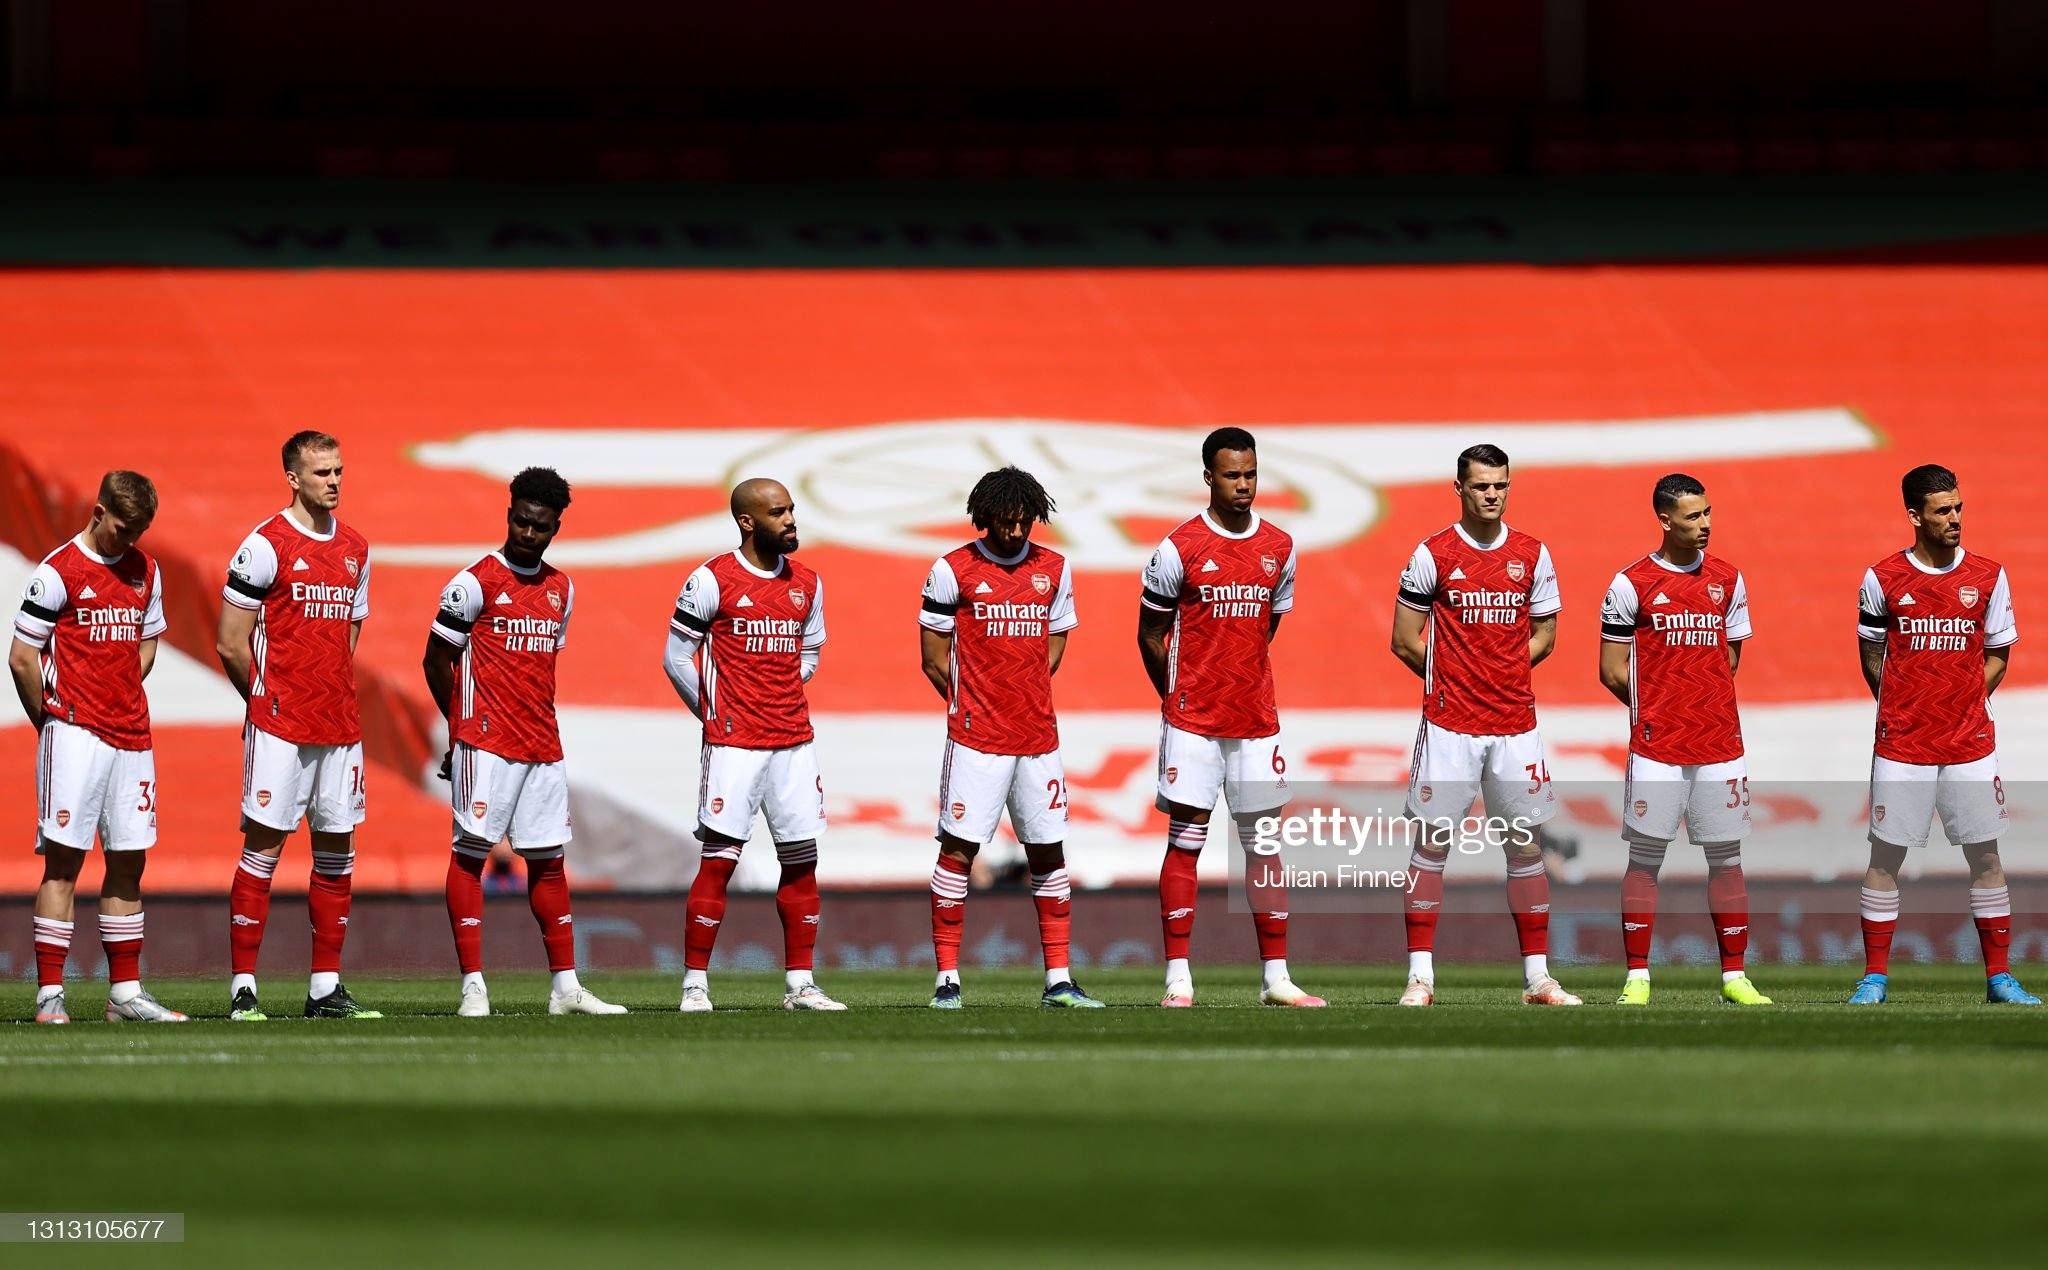 ¿Cuánto mide Dani Ceballos? - Altura - Real height - Página 4 Arsenal-players-observe-a-moment-of-silence-in-memory-of-hrh-prince-picture-id1313105677?s=2048x2048